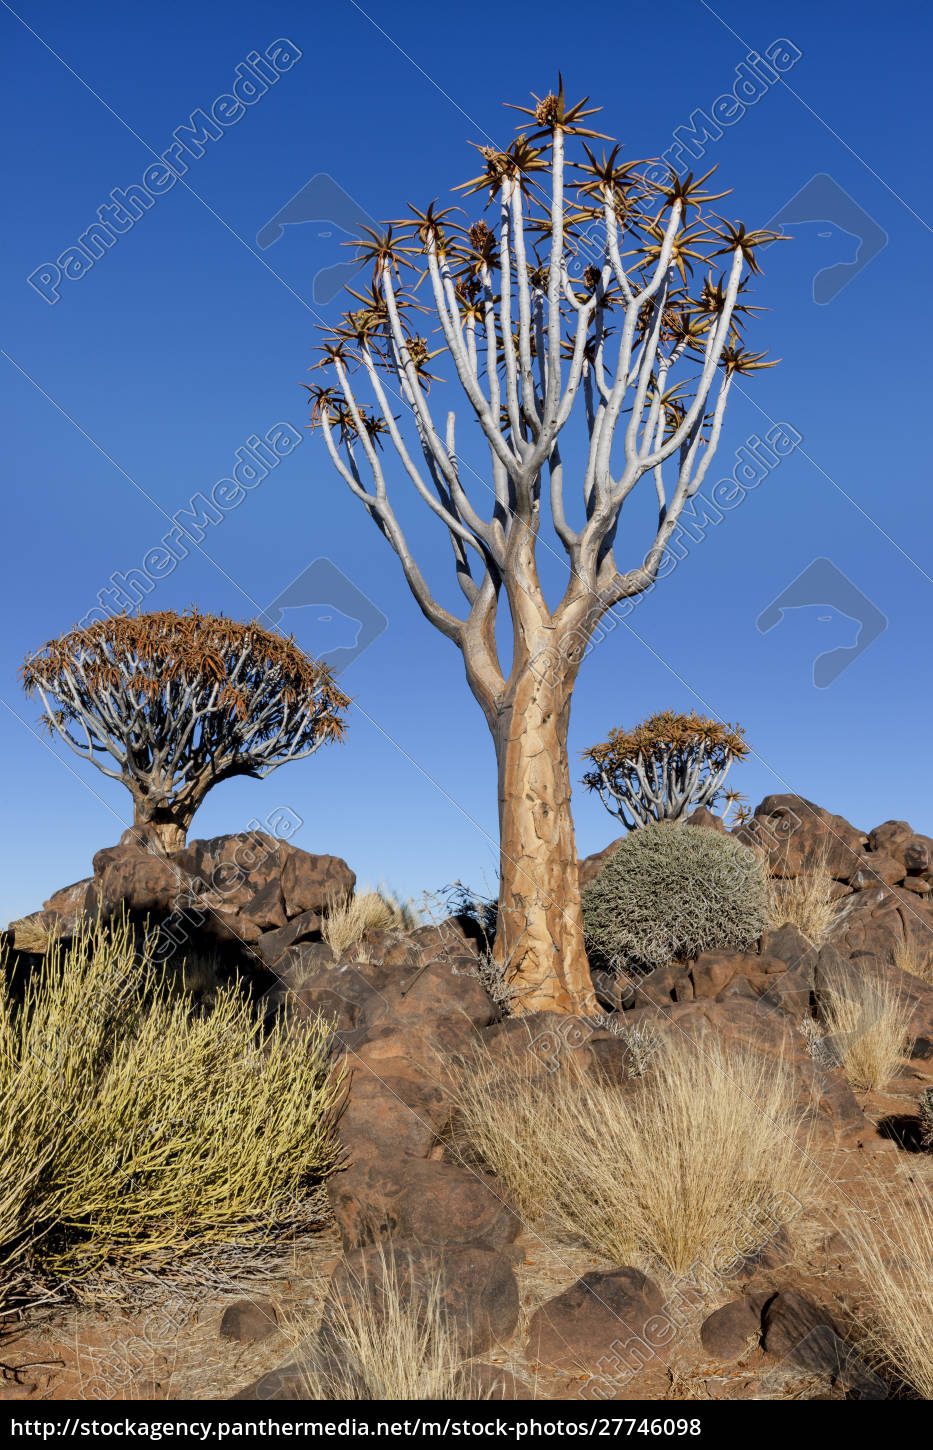 africa, , namibia, , keetmanshoop, , quiver, tree, forest, - 27746098